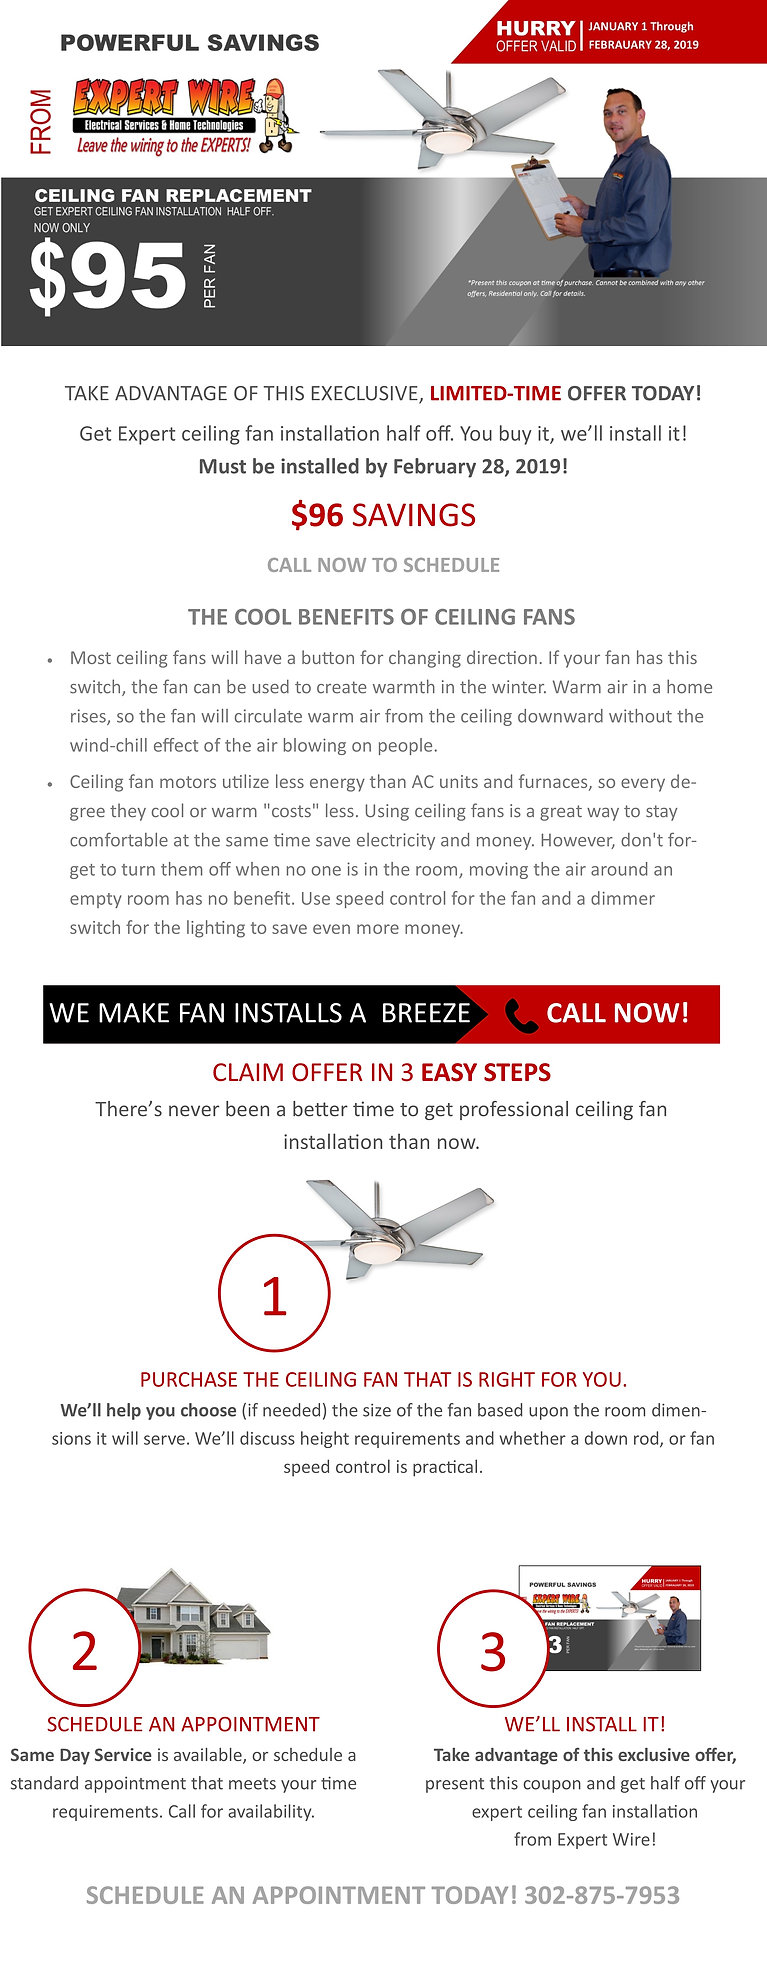 CEILING FAN REPLACEMENT $95 FLYER.jpg